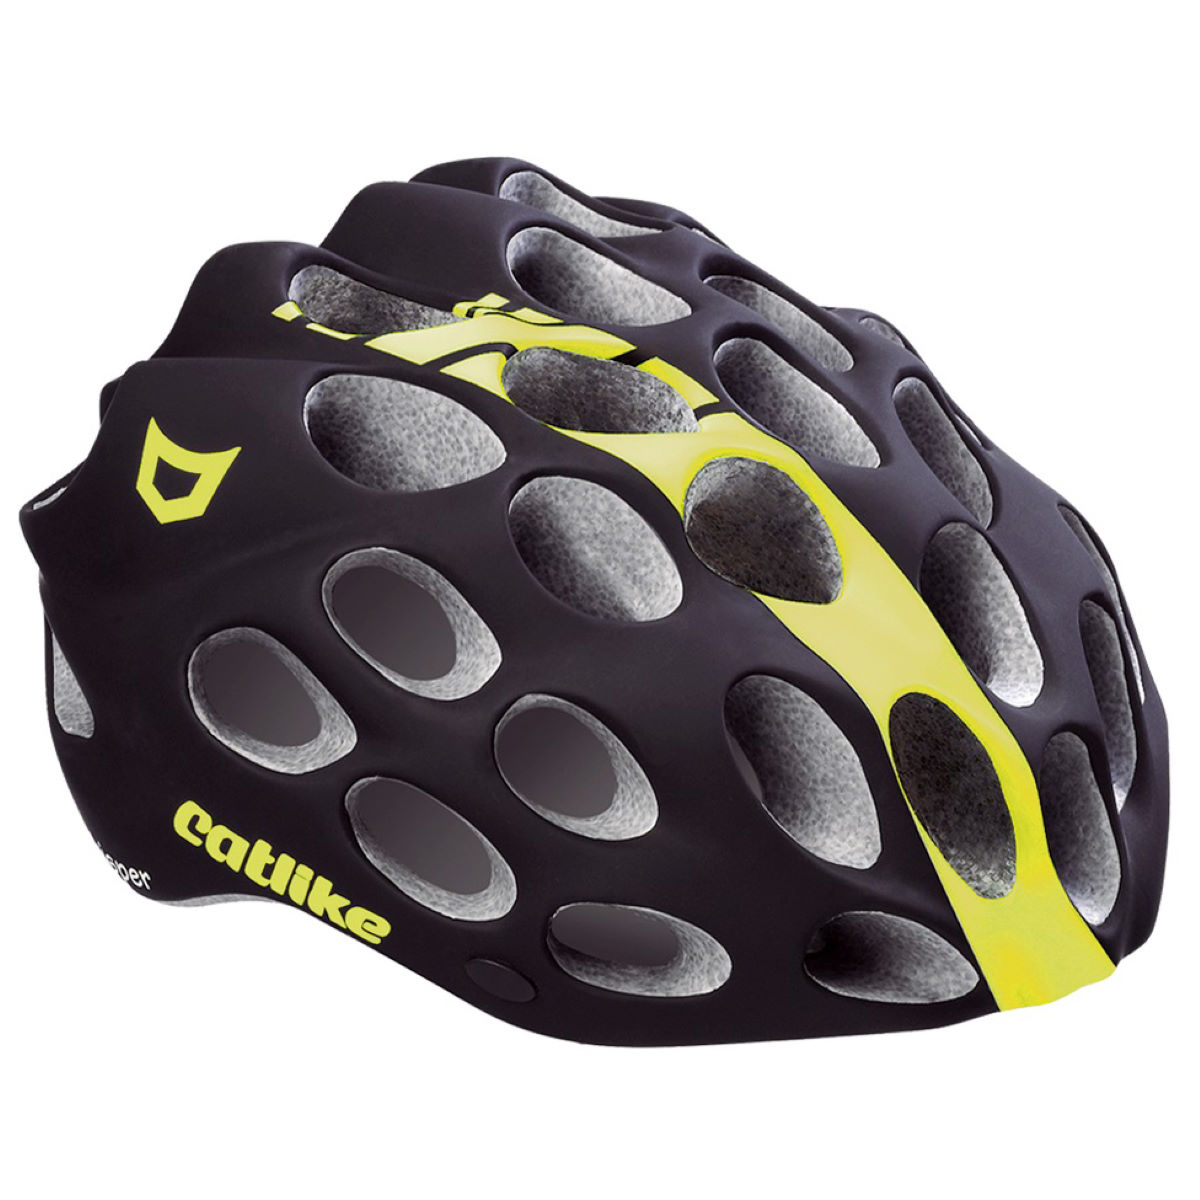 Catlike Whisper Road Helmet 2016